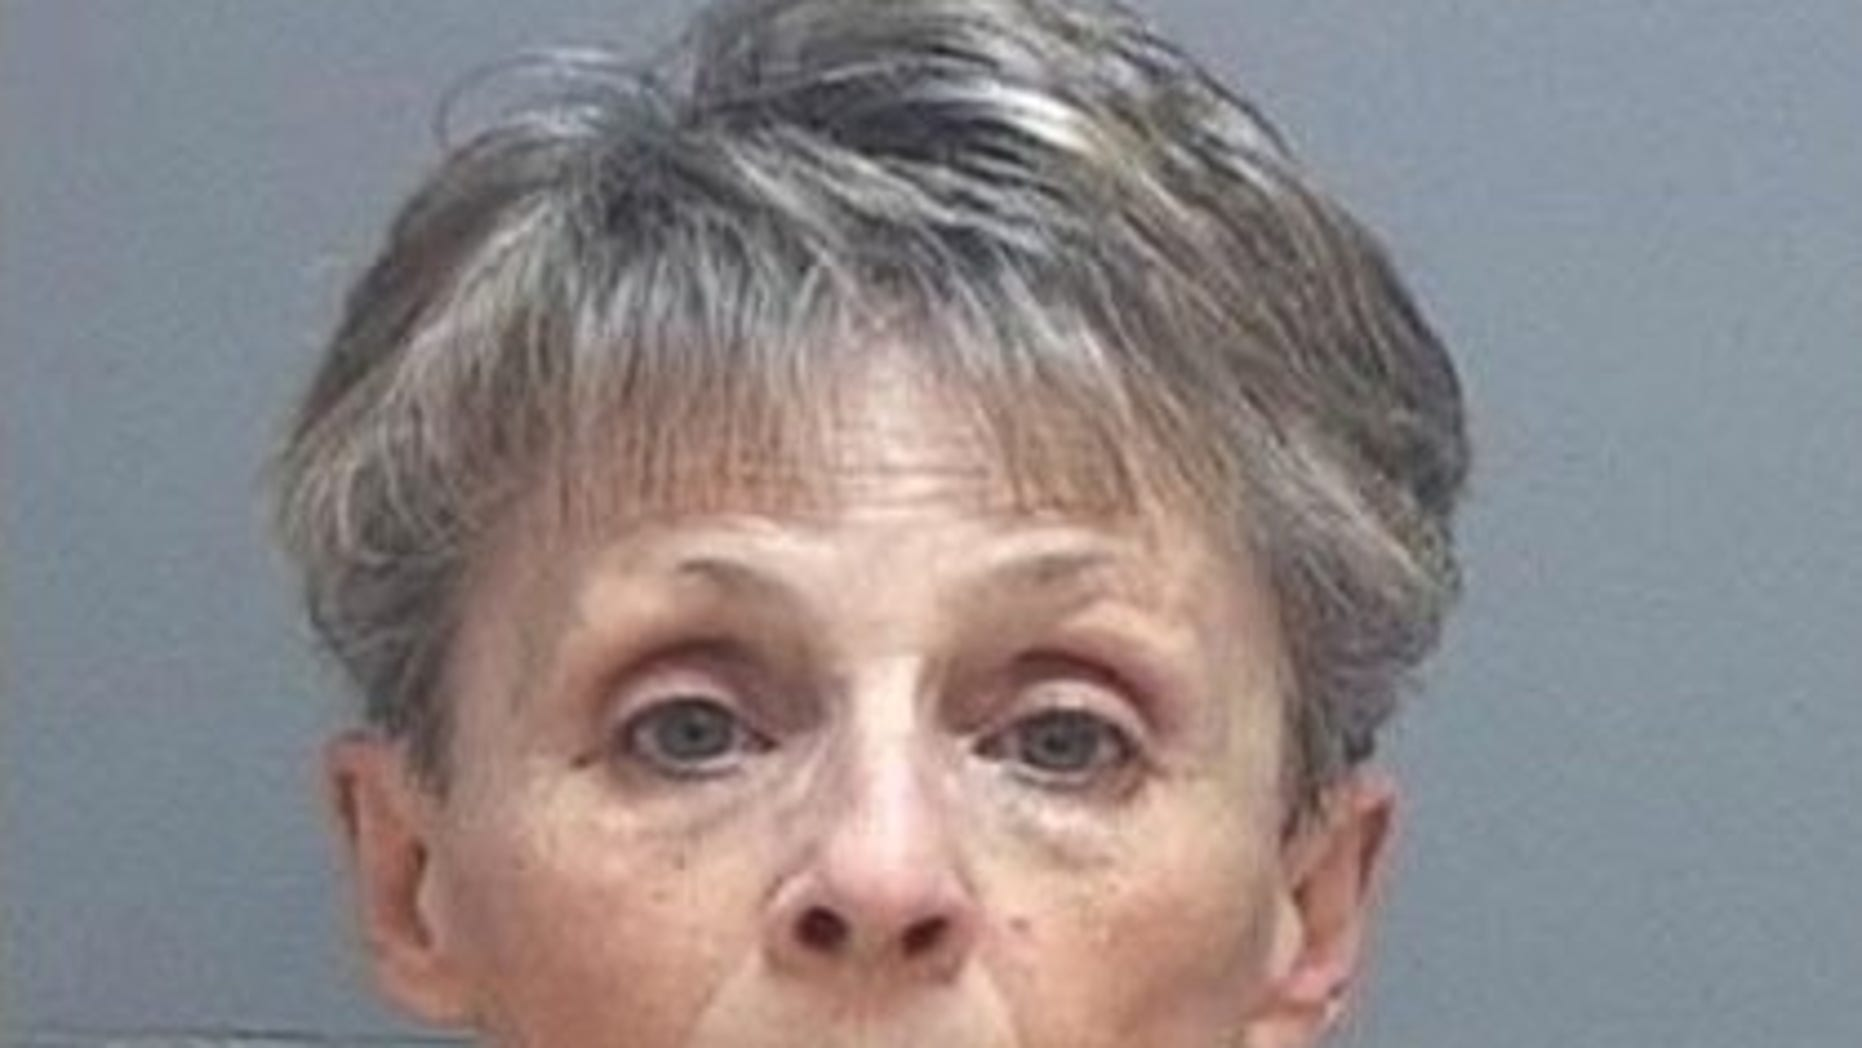 Linda Tracy Gillman, 70, was charged for attempting to hire a hit man to kill two people. This was the third time she allegedly attempted to do so.